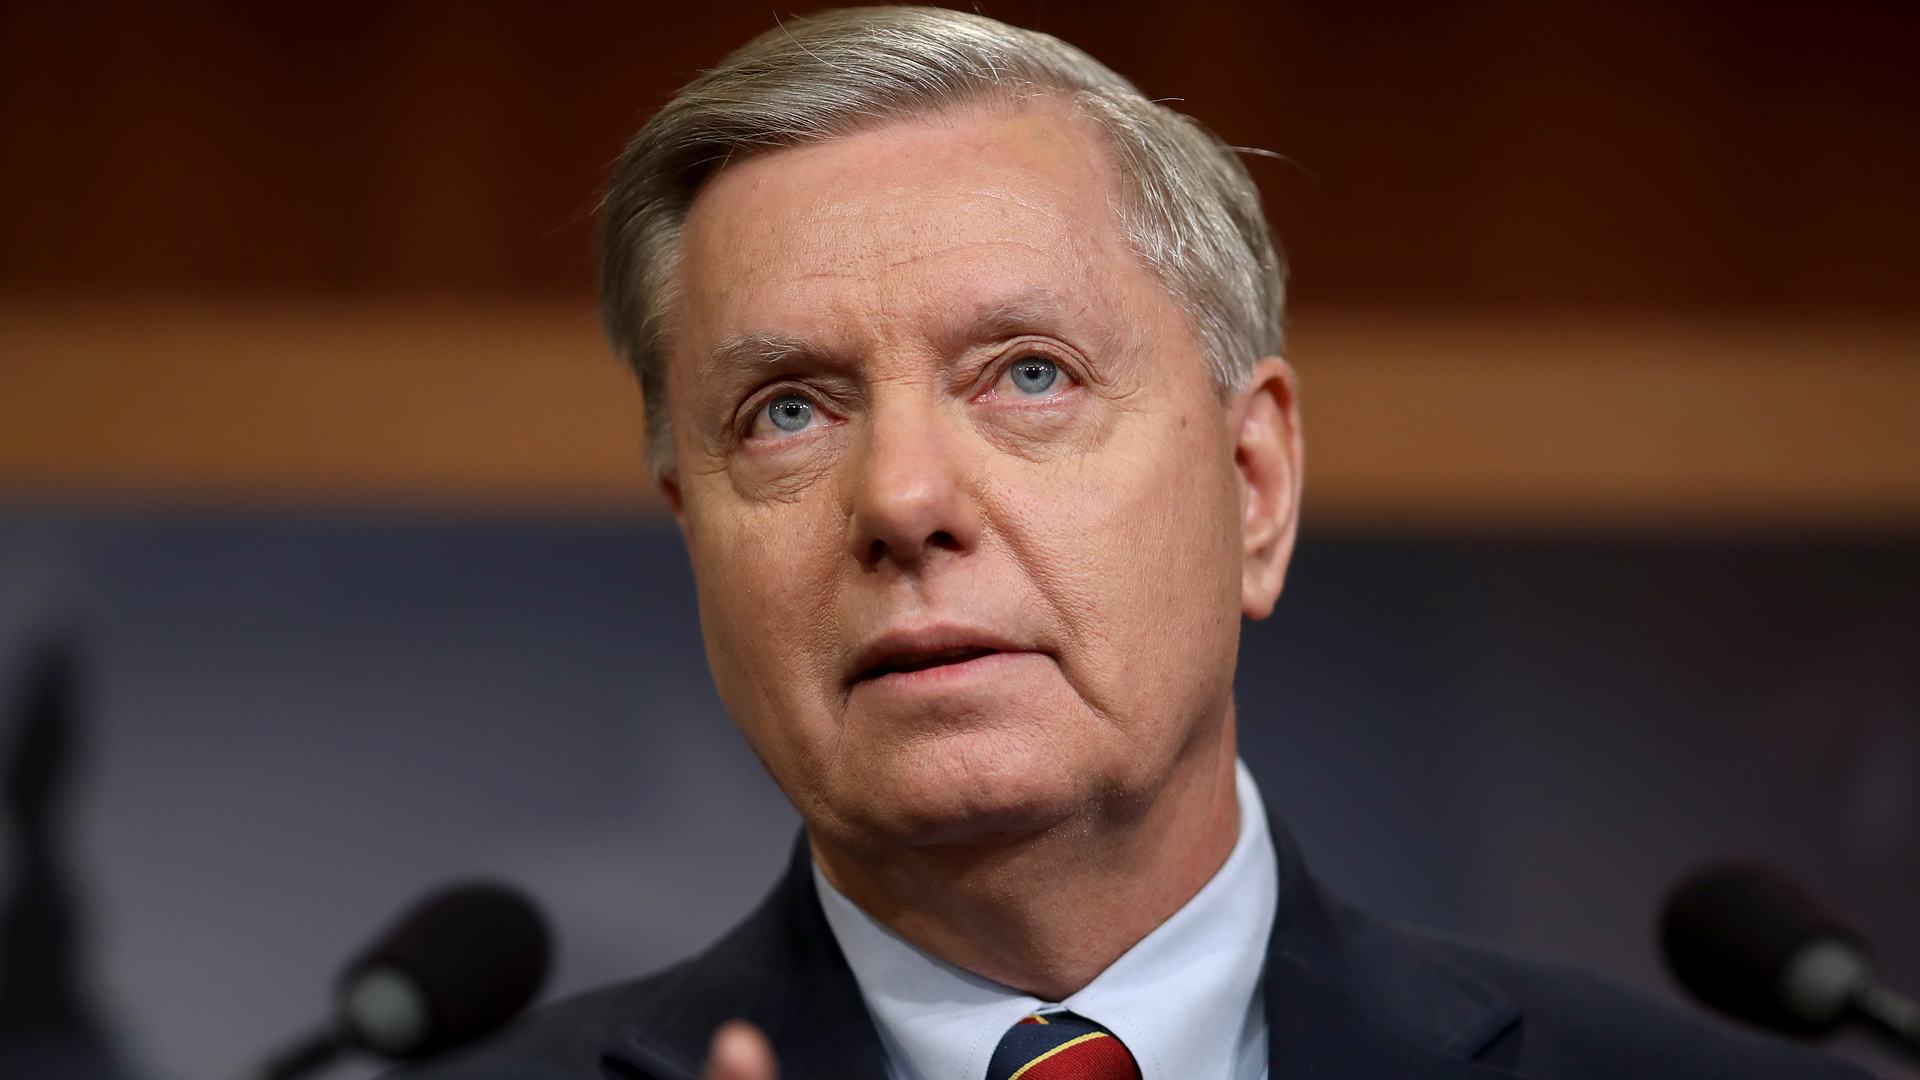 Sen. Lindsey Graham speaks during a press conference at the U.S. Capitol on Dec. 20, 2018, in Washington, D.C. (Credit: Win McNamee/Getty Images)